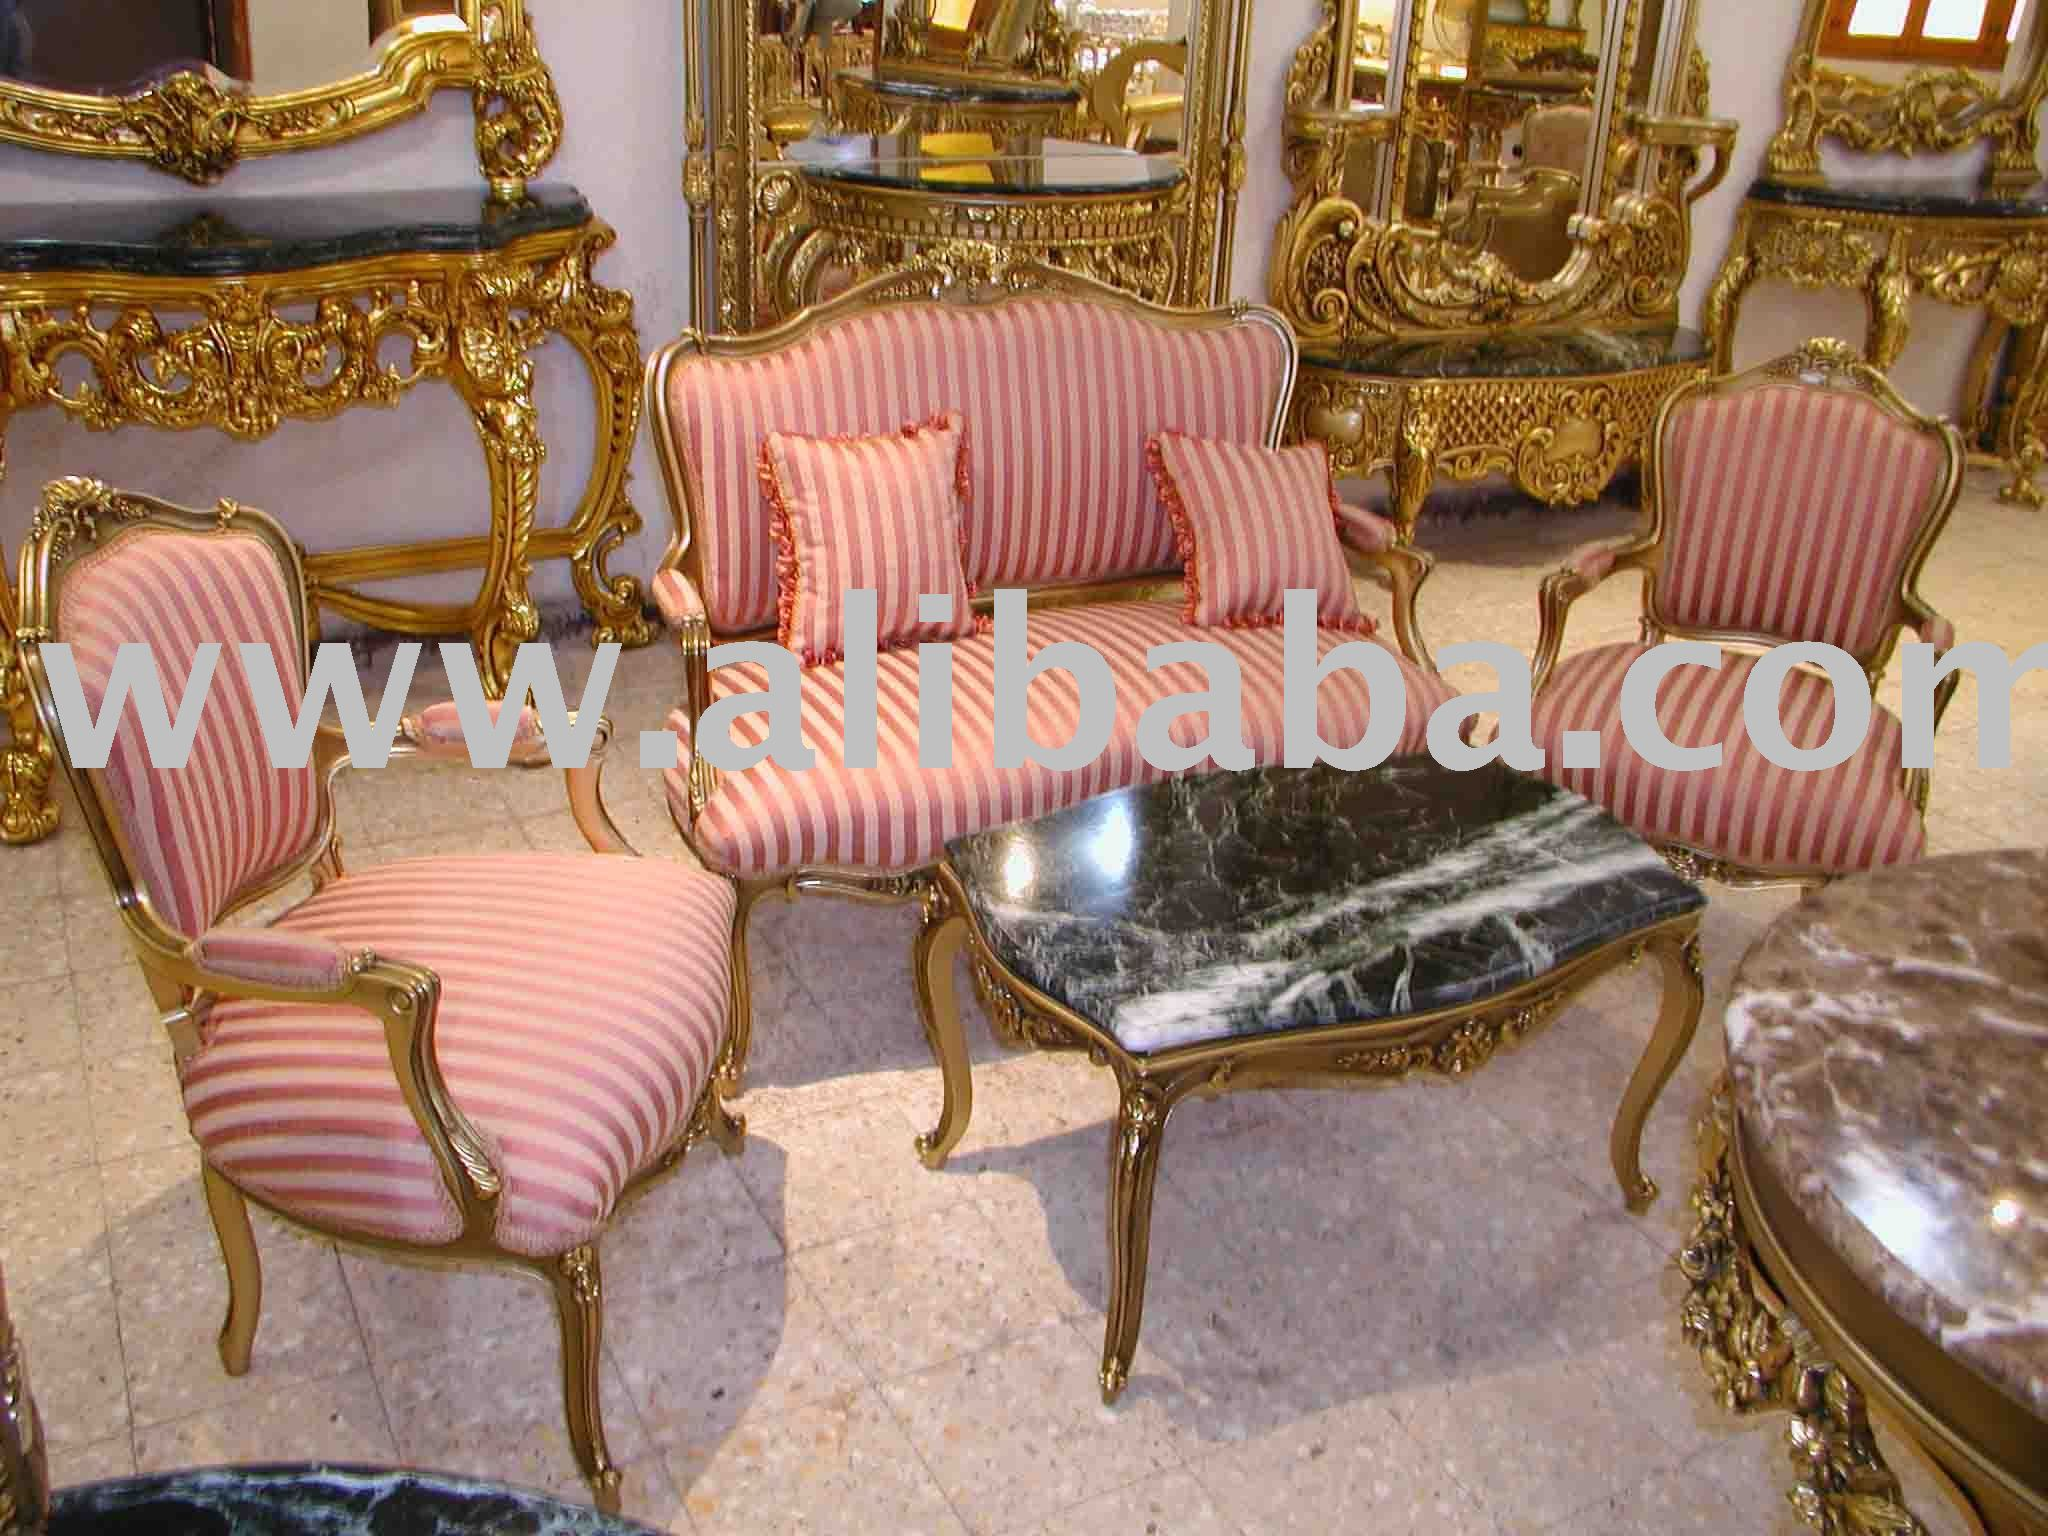 Egypt Salon Furniture Egypt Salon Furniture Manufacturers and